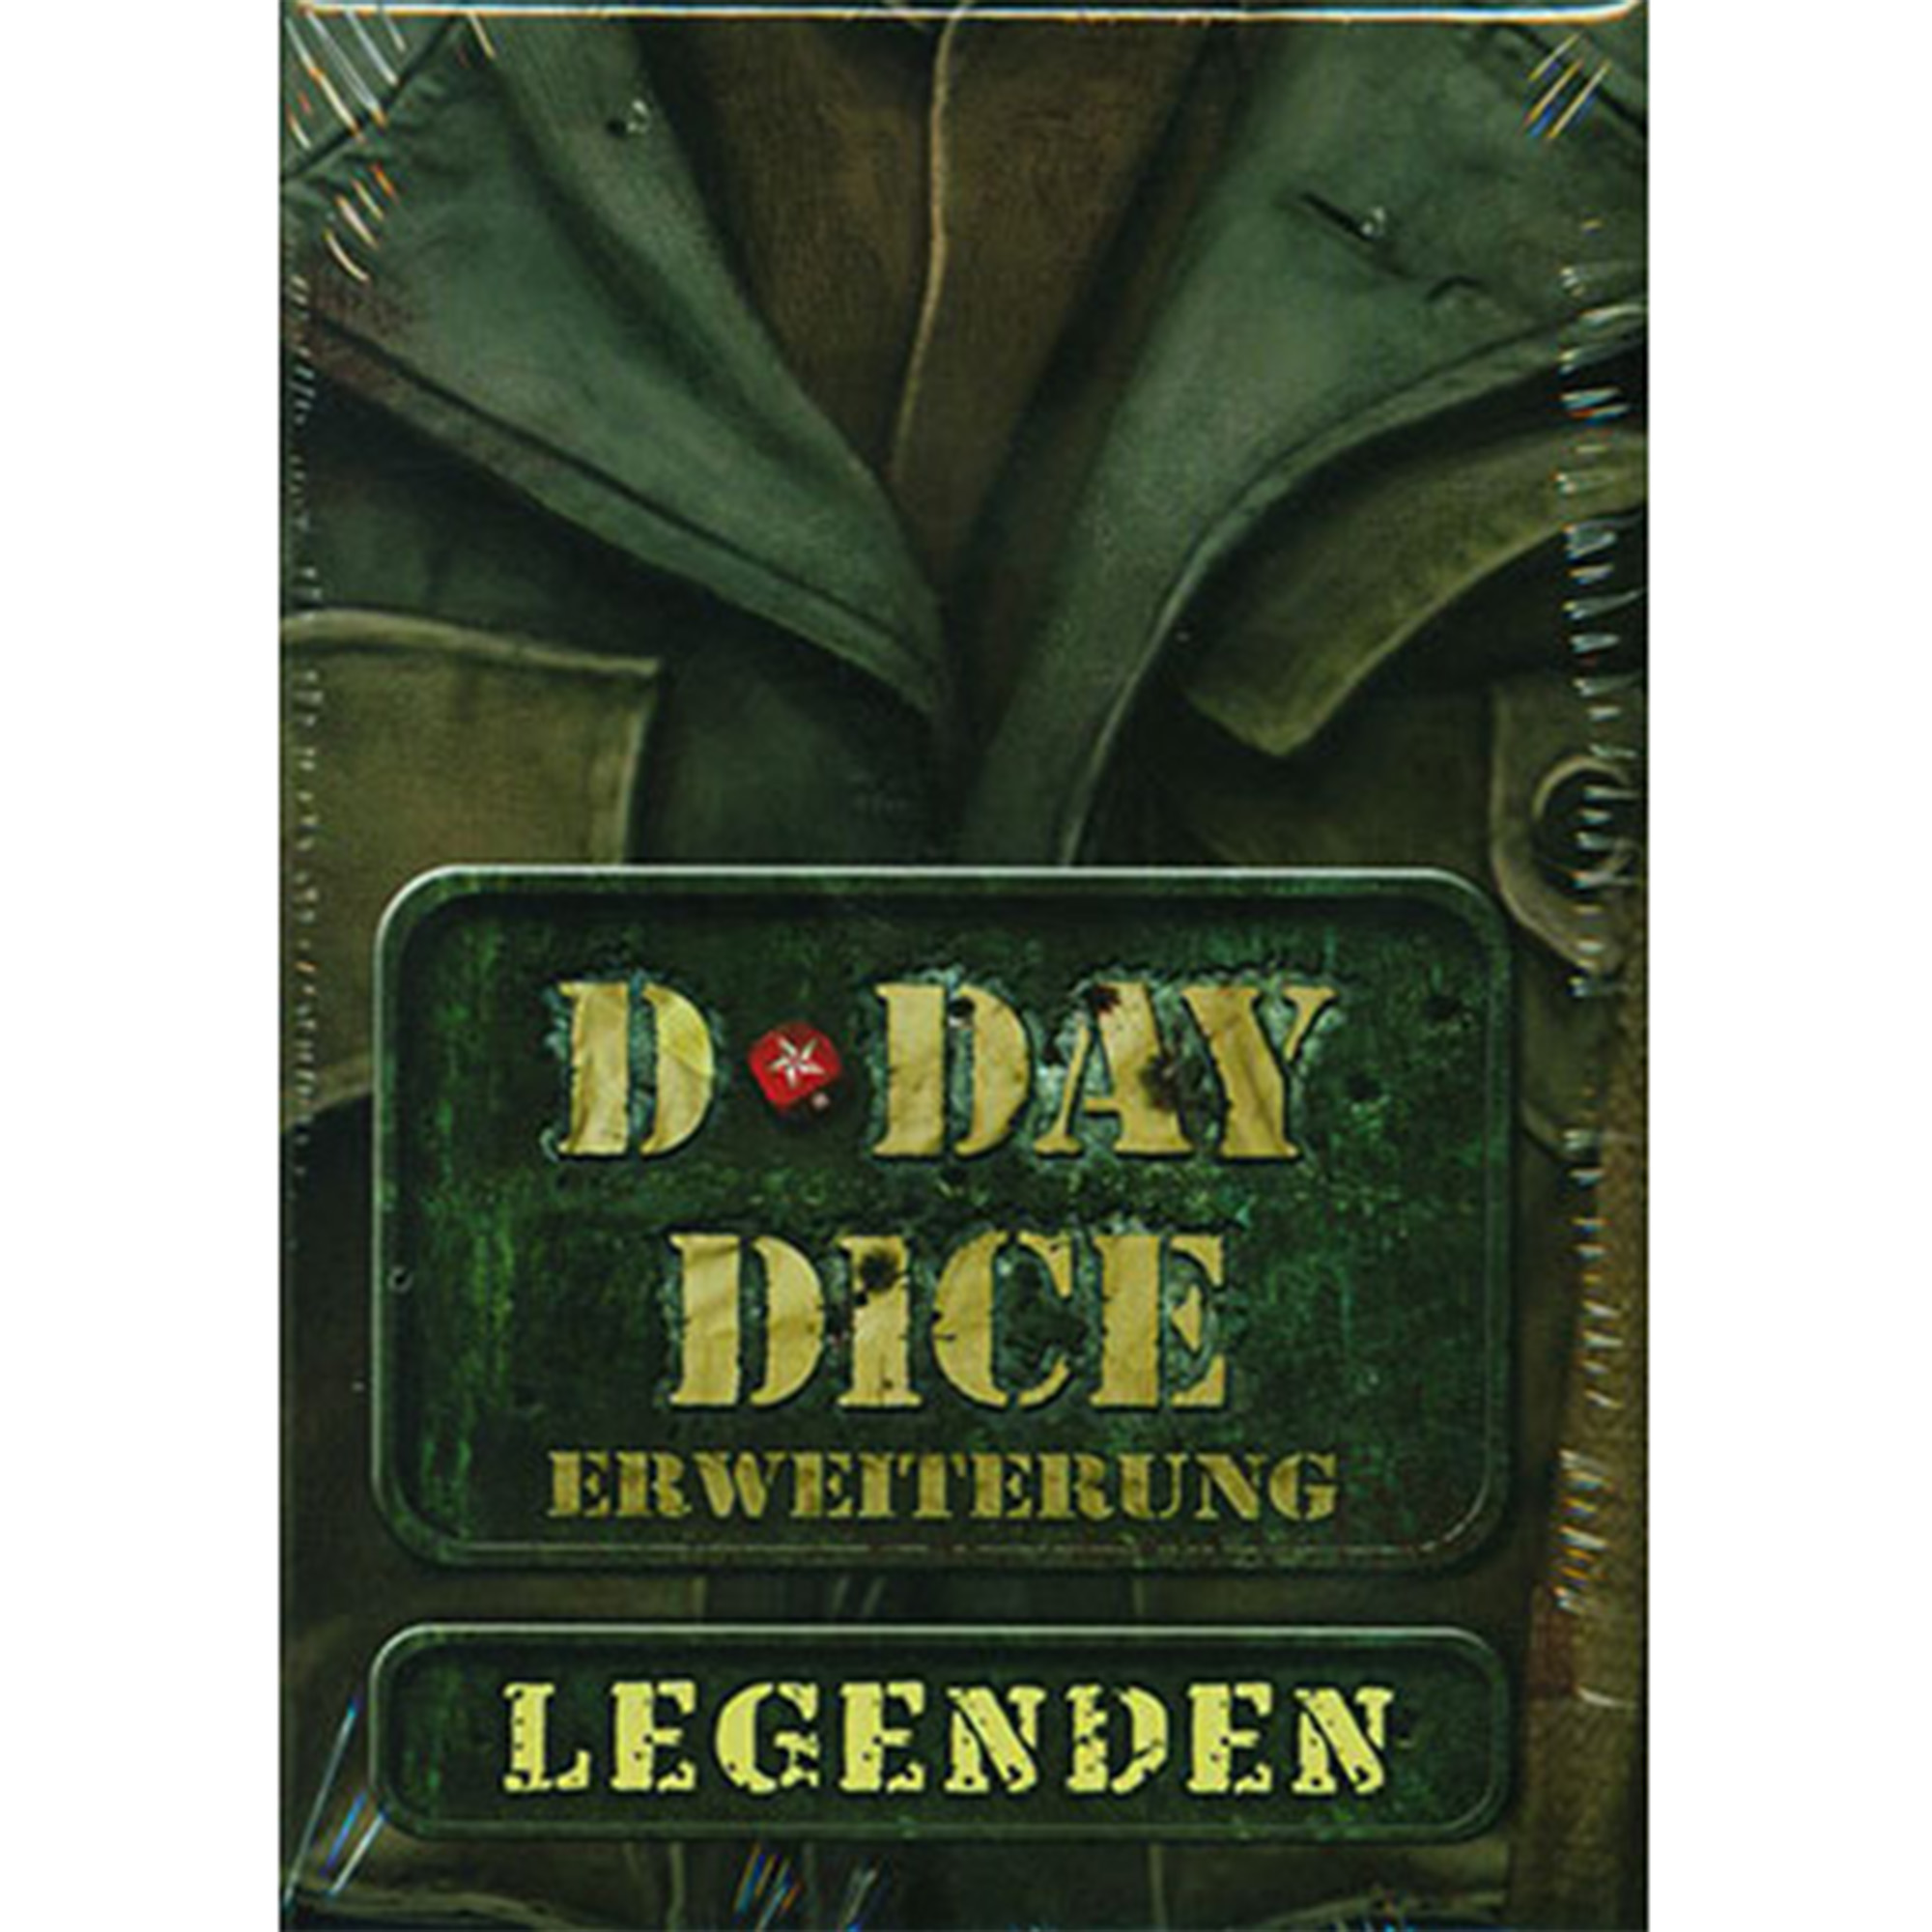 D-Day Dice 2nd Edition - Legenden Erweiterung